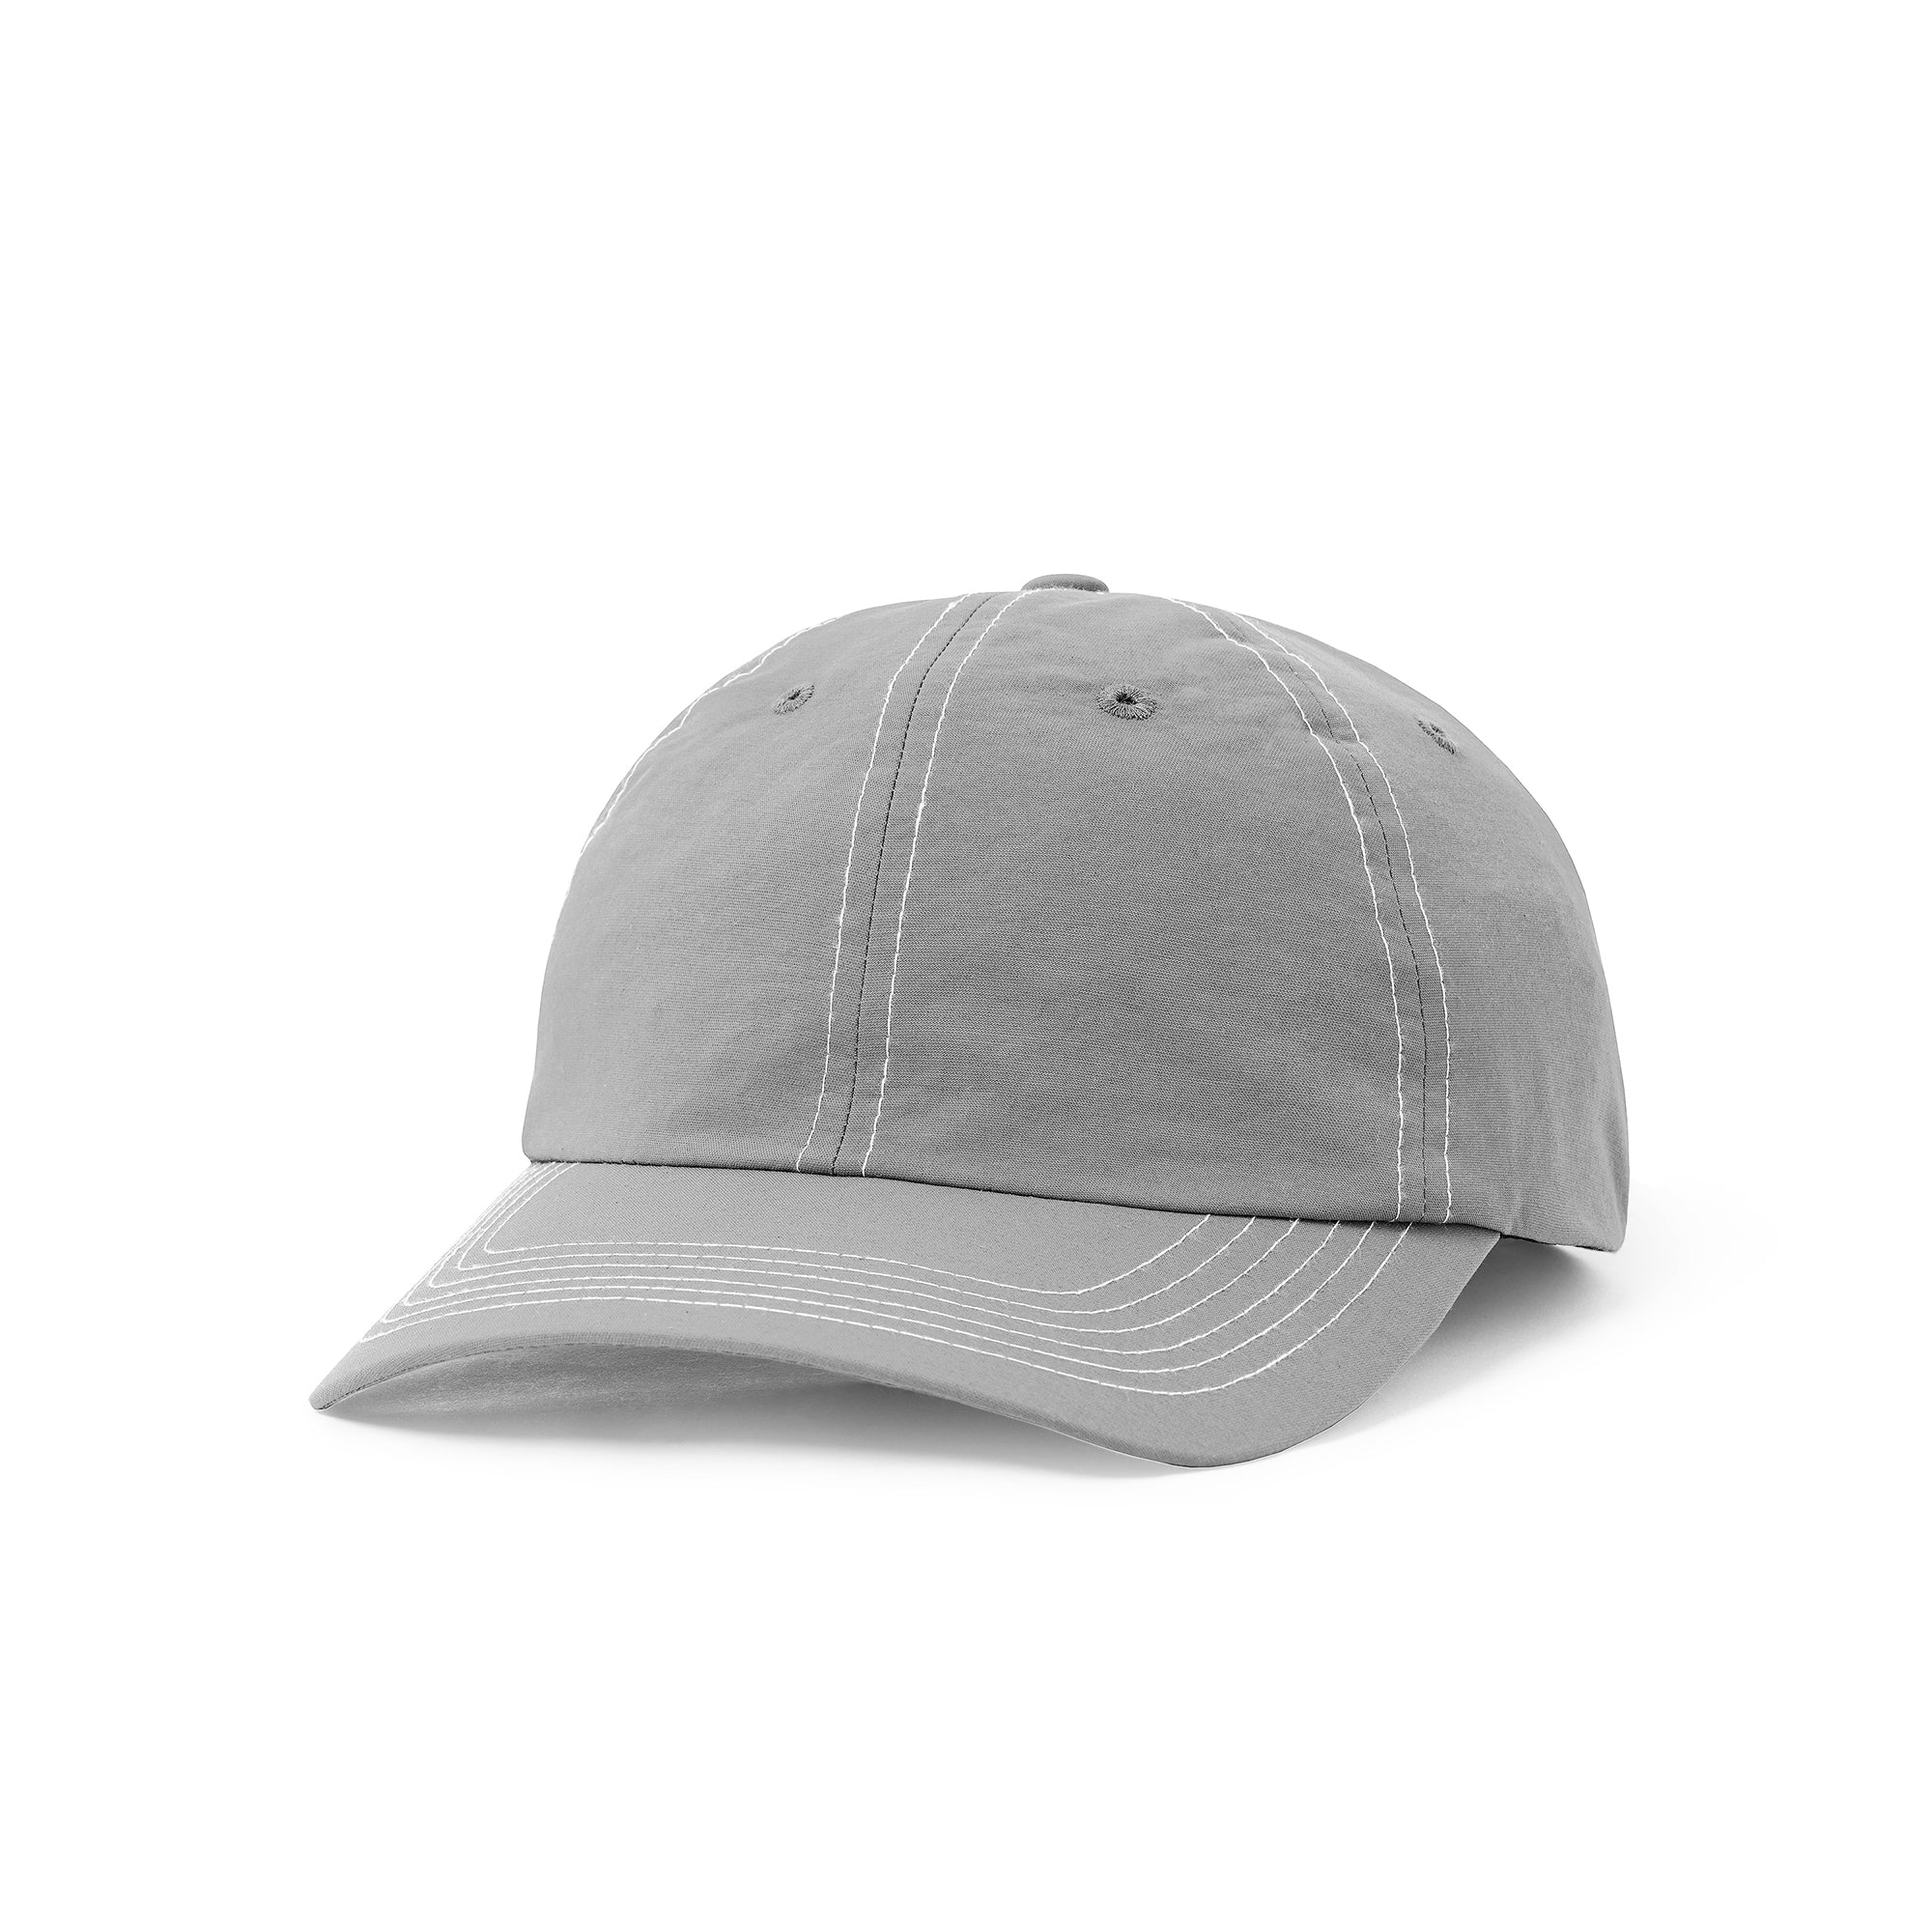 Butter Goods Summit 6 Panel Cap Product Photo #1